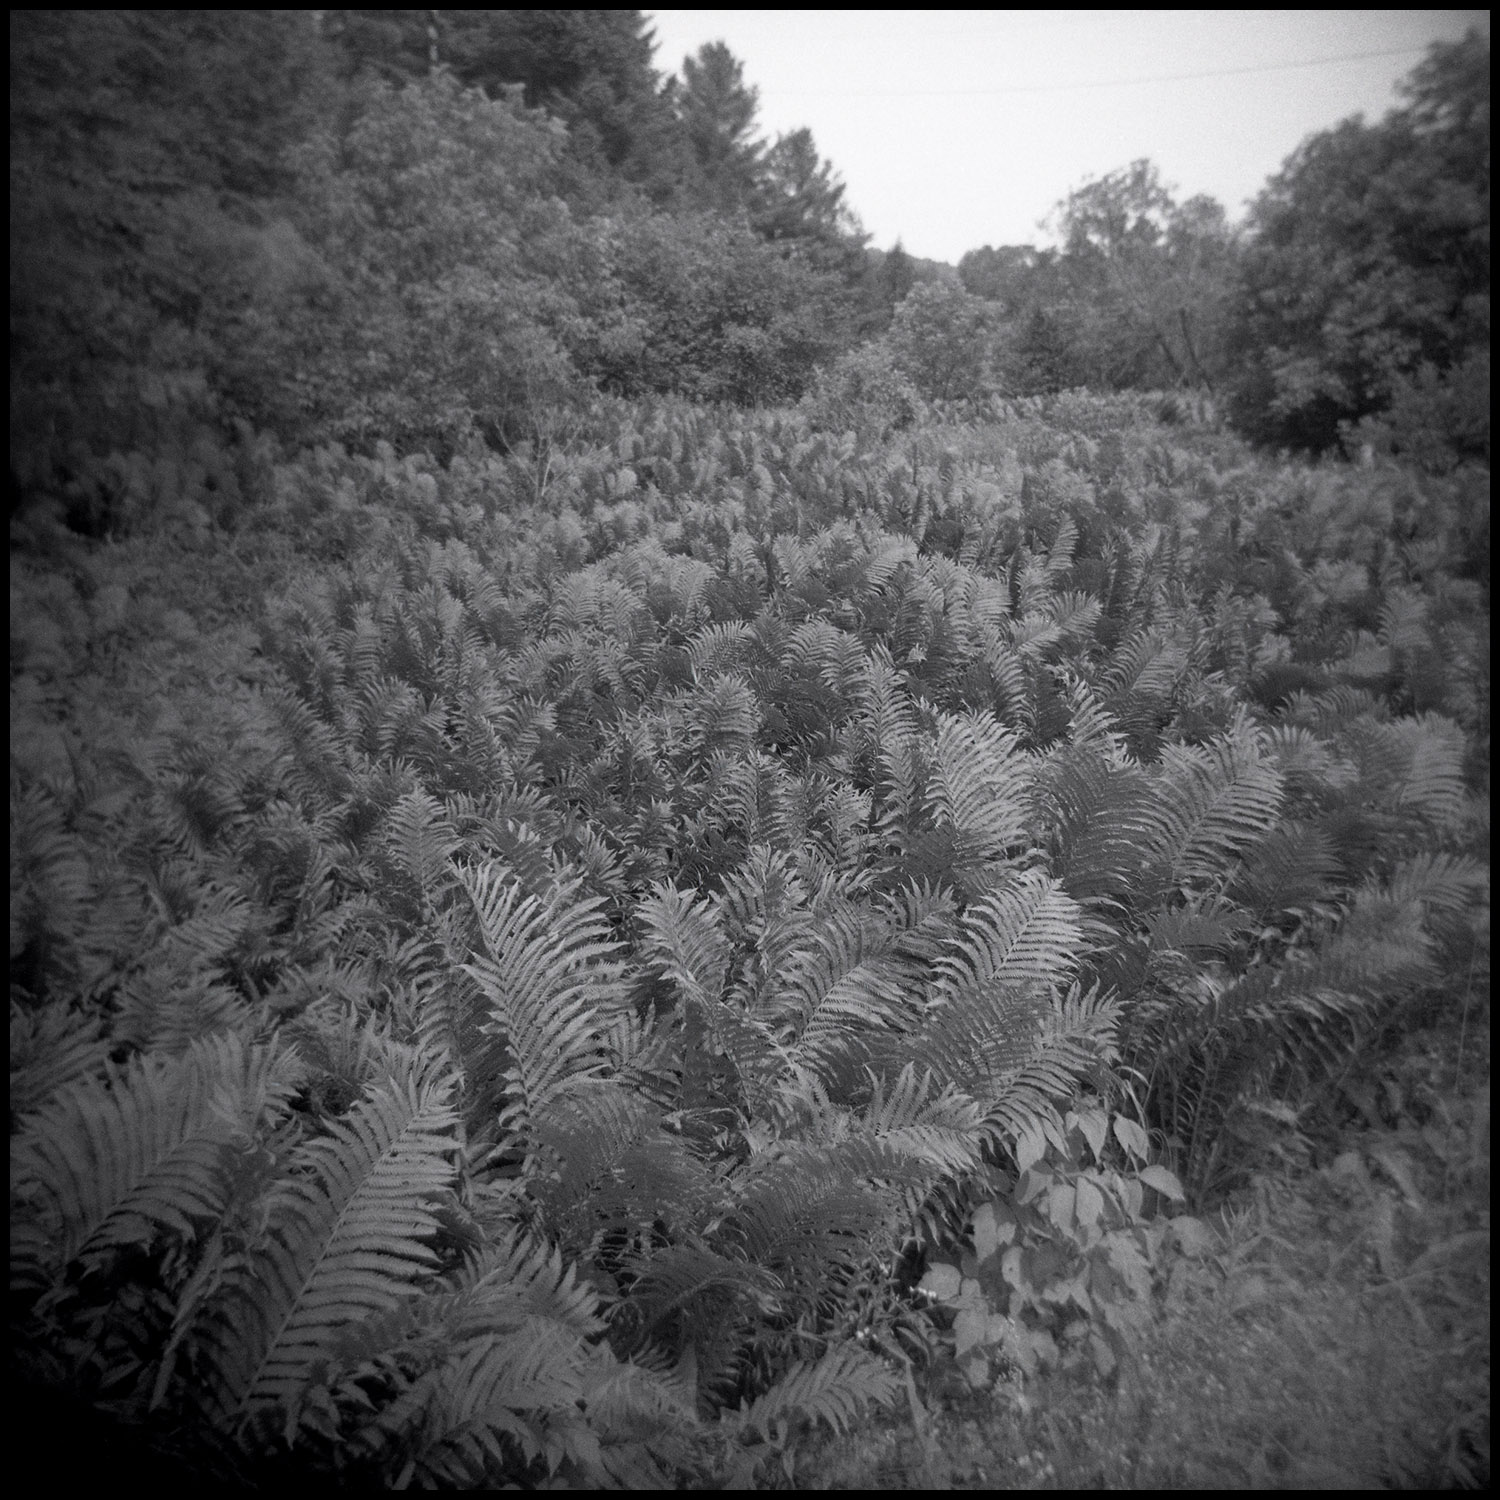 Image from a Vermont Walk 1